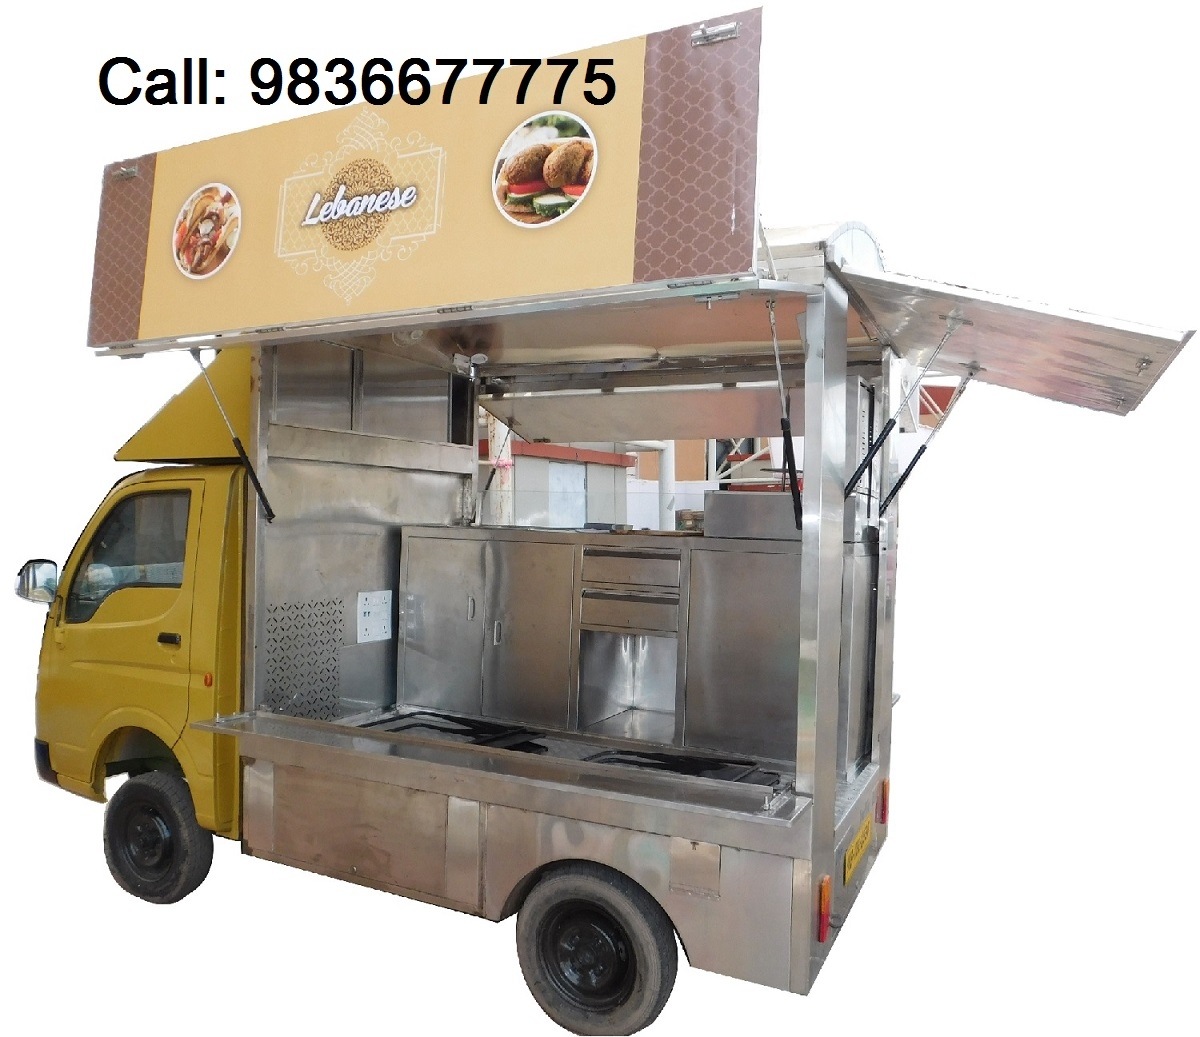 Customized Mobile Food Truck at Reasonable Price